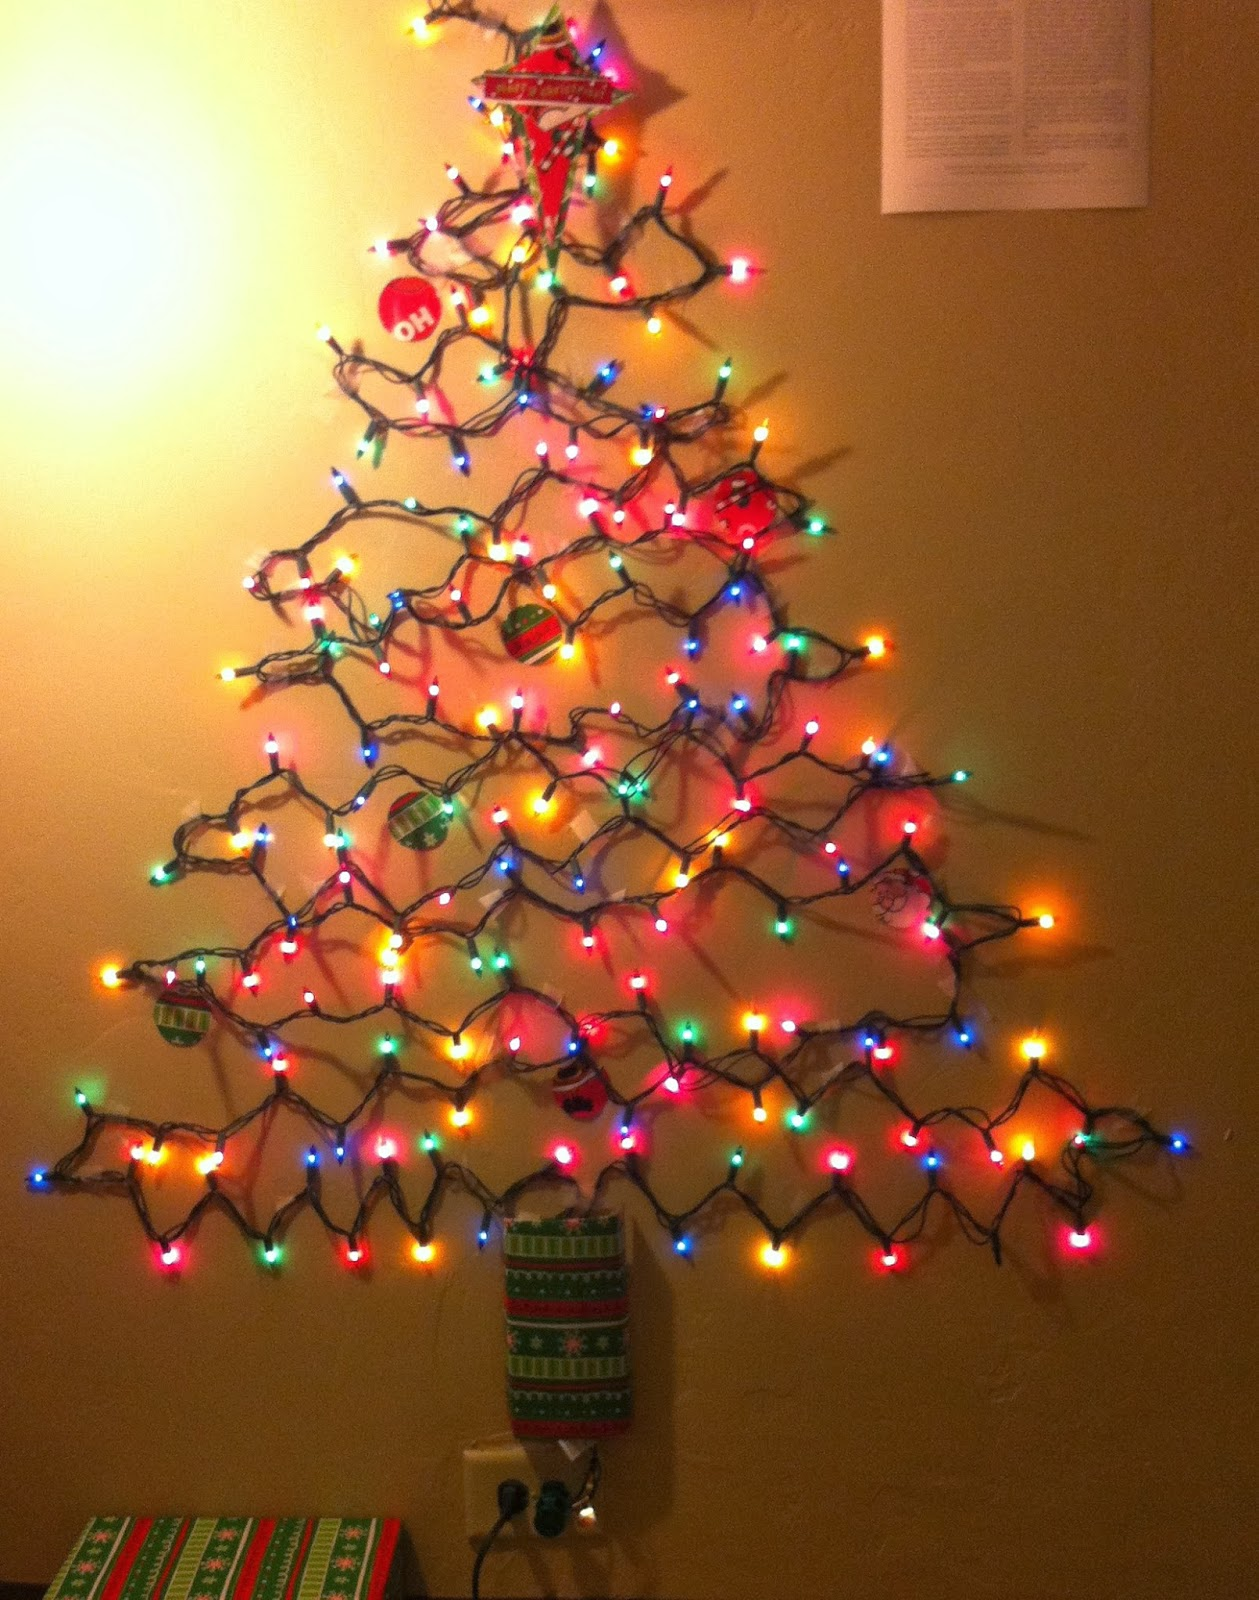 Wall Tree Made Of Lights : Christmas on a Budget: Alternative Christmas Tree Ideas